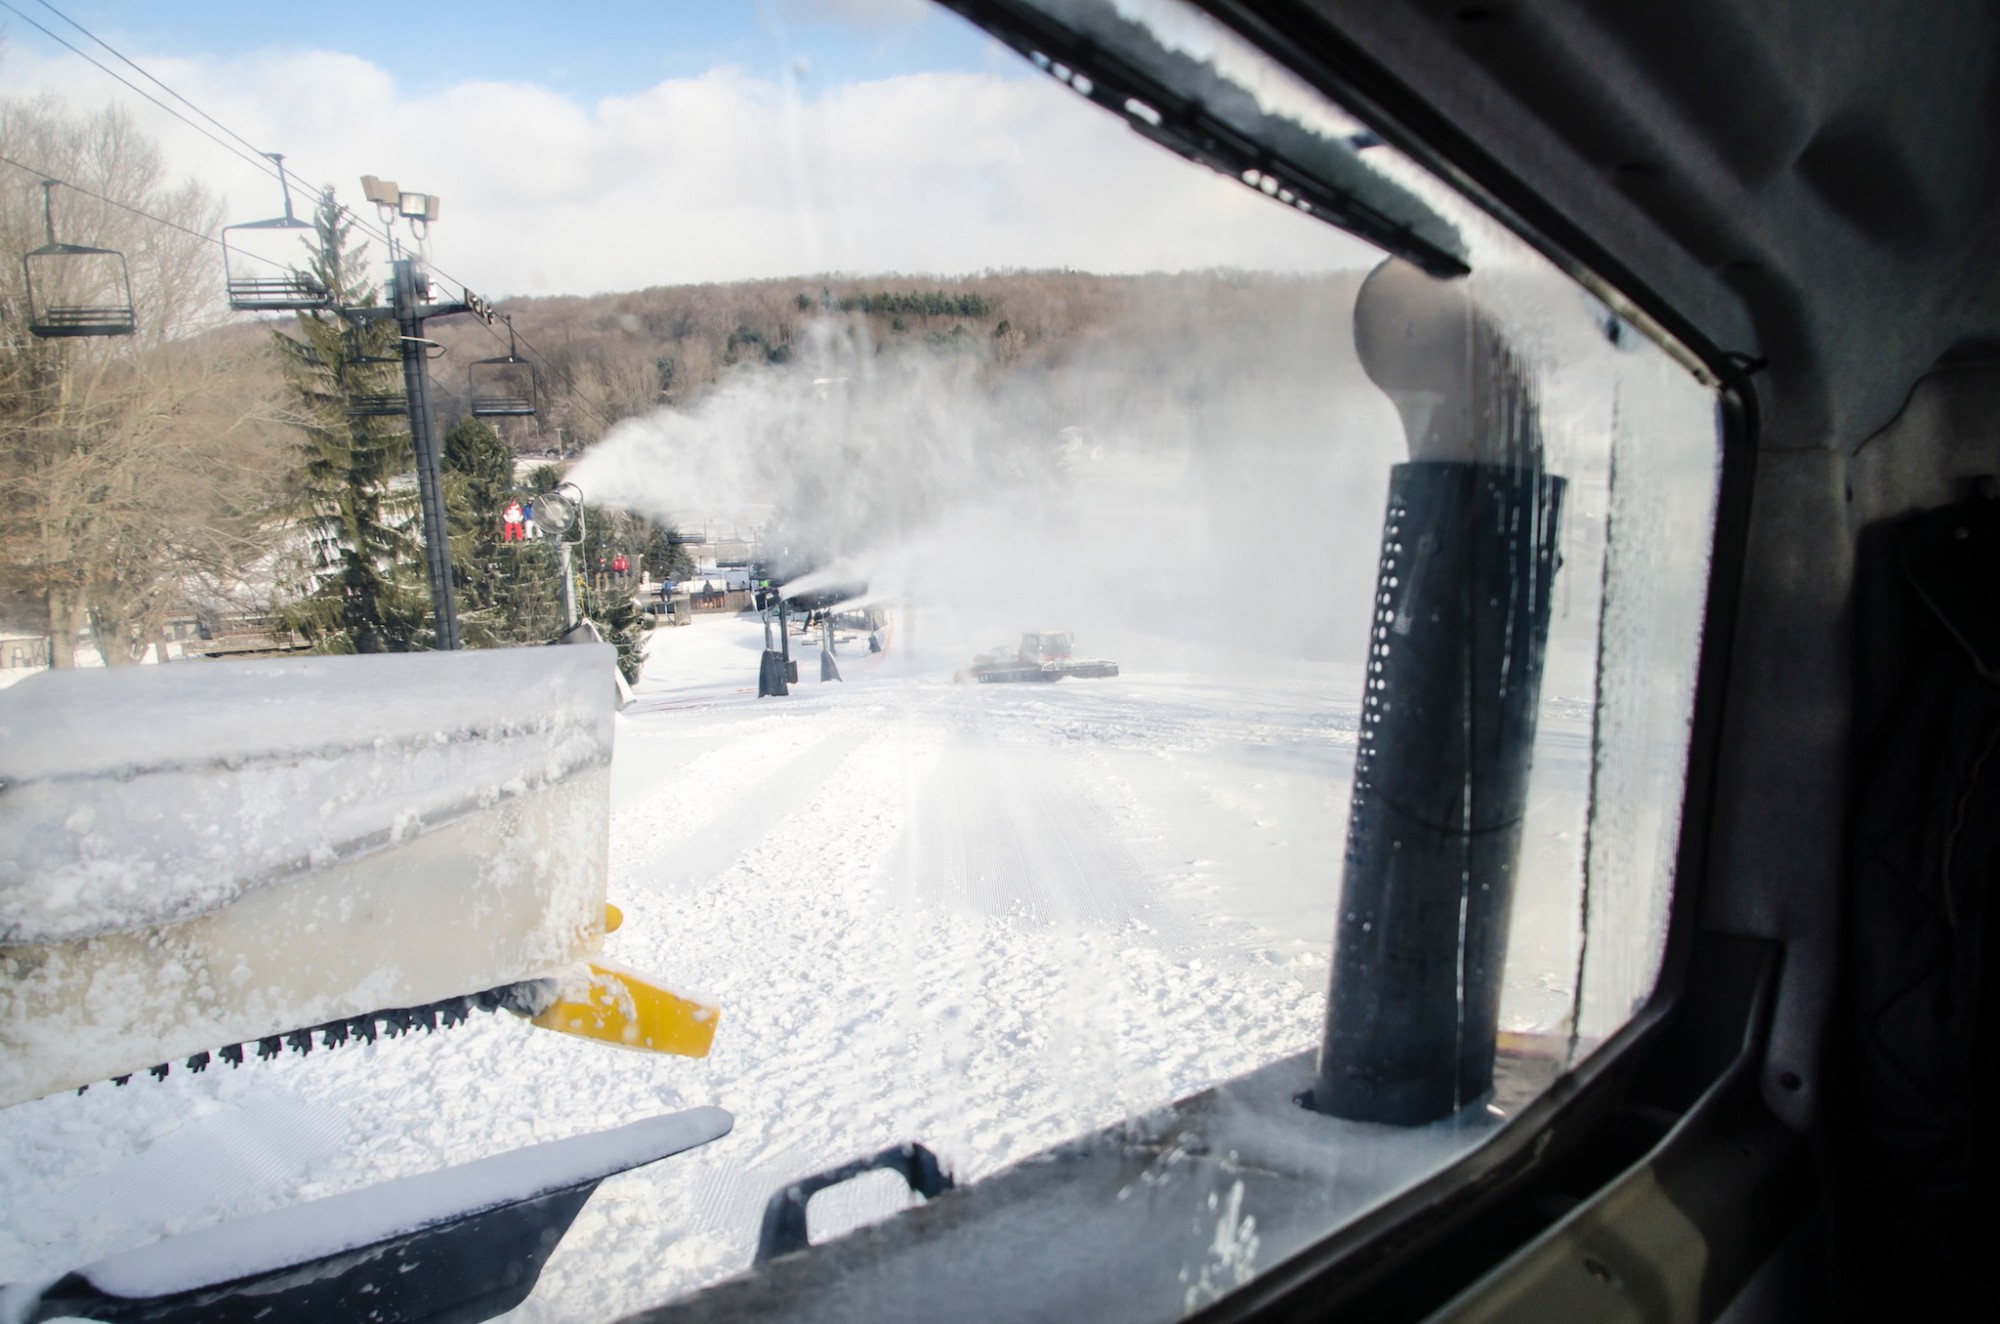 Snow Cat Grooming Machines out on Competition Slope during Snowmaking